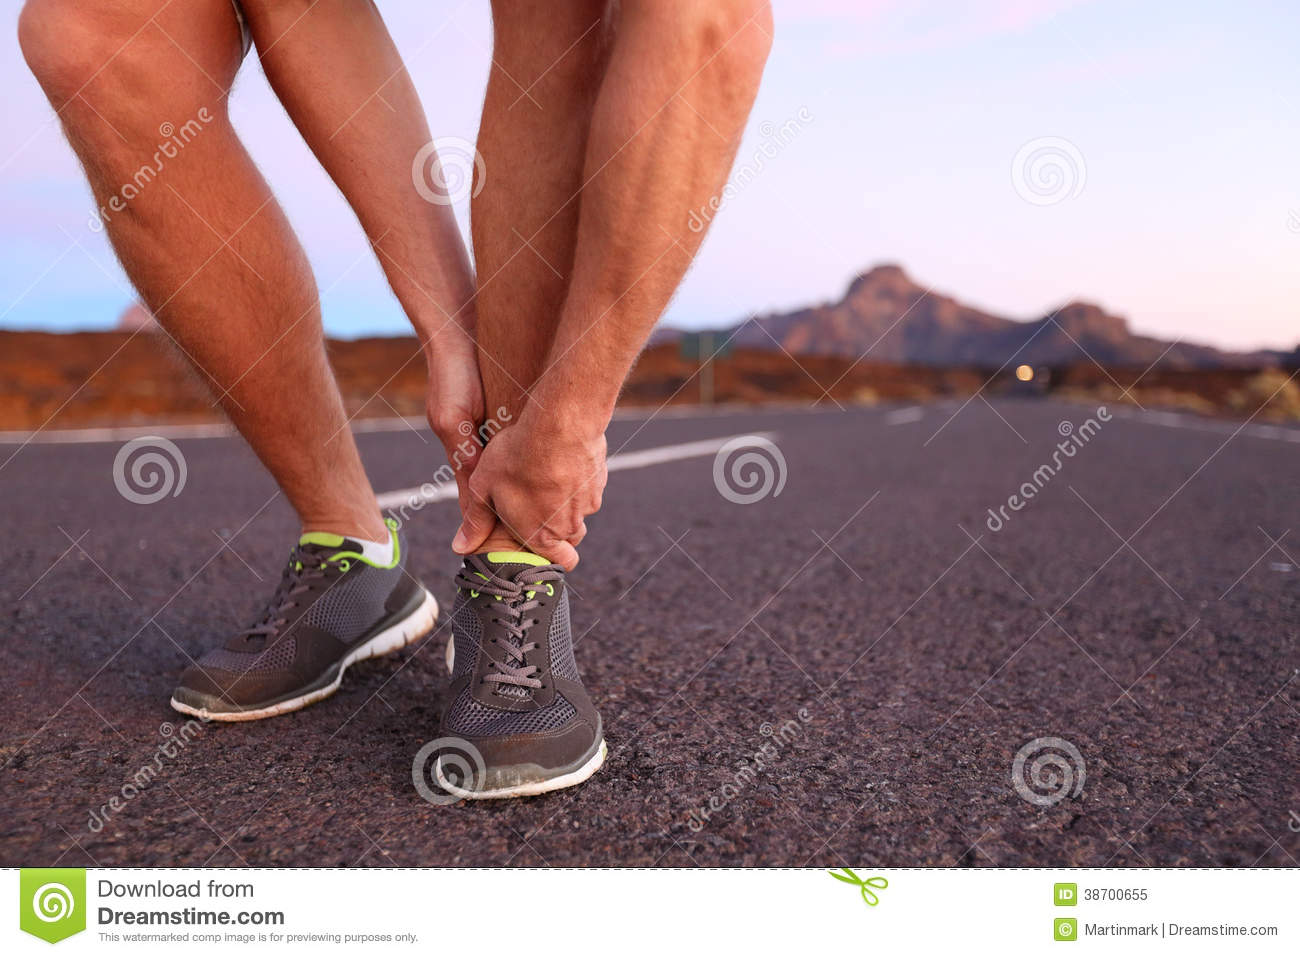 Ankle and foot pain no injury